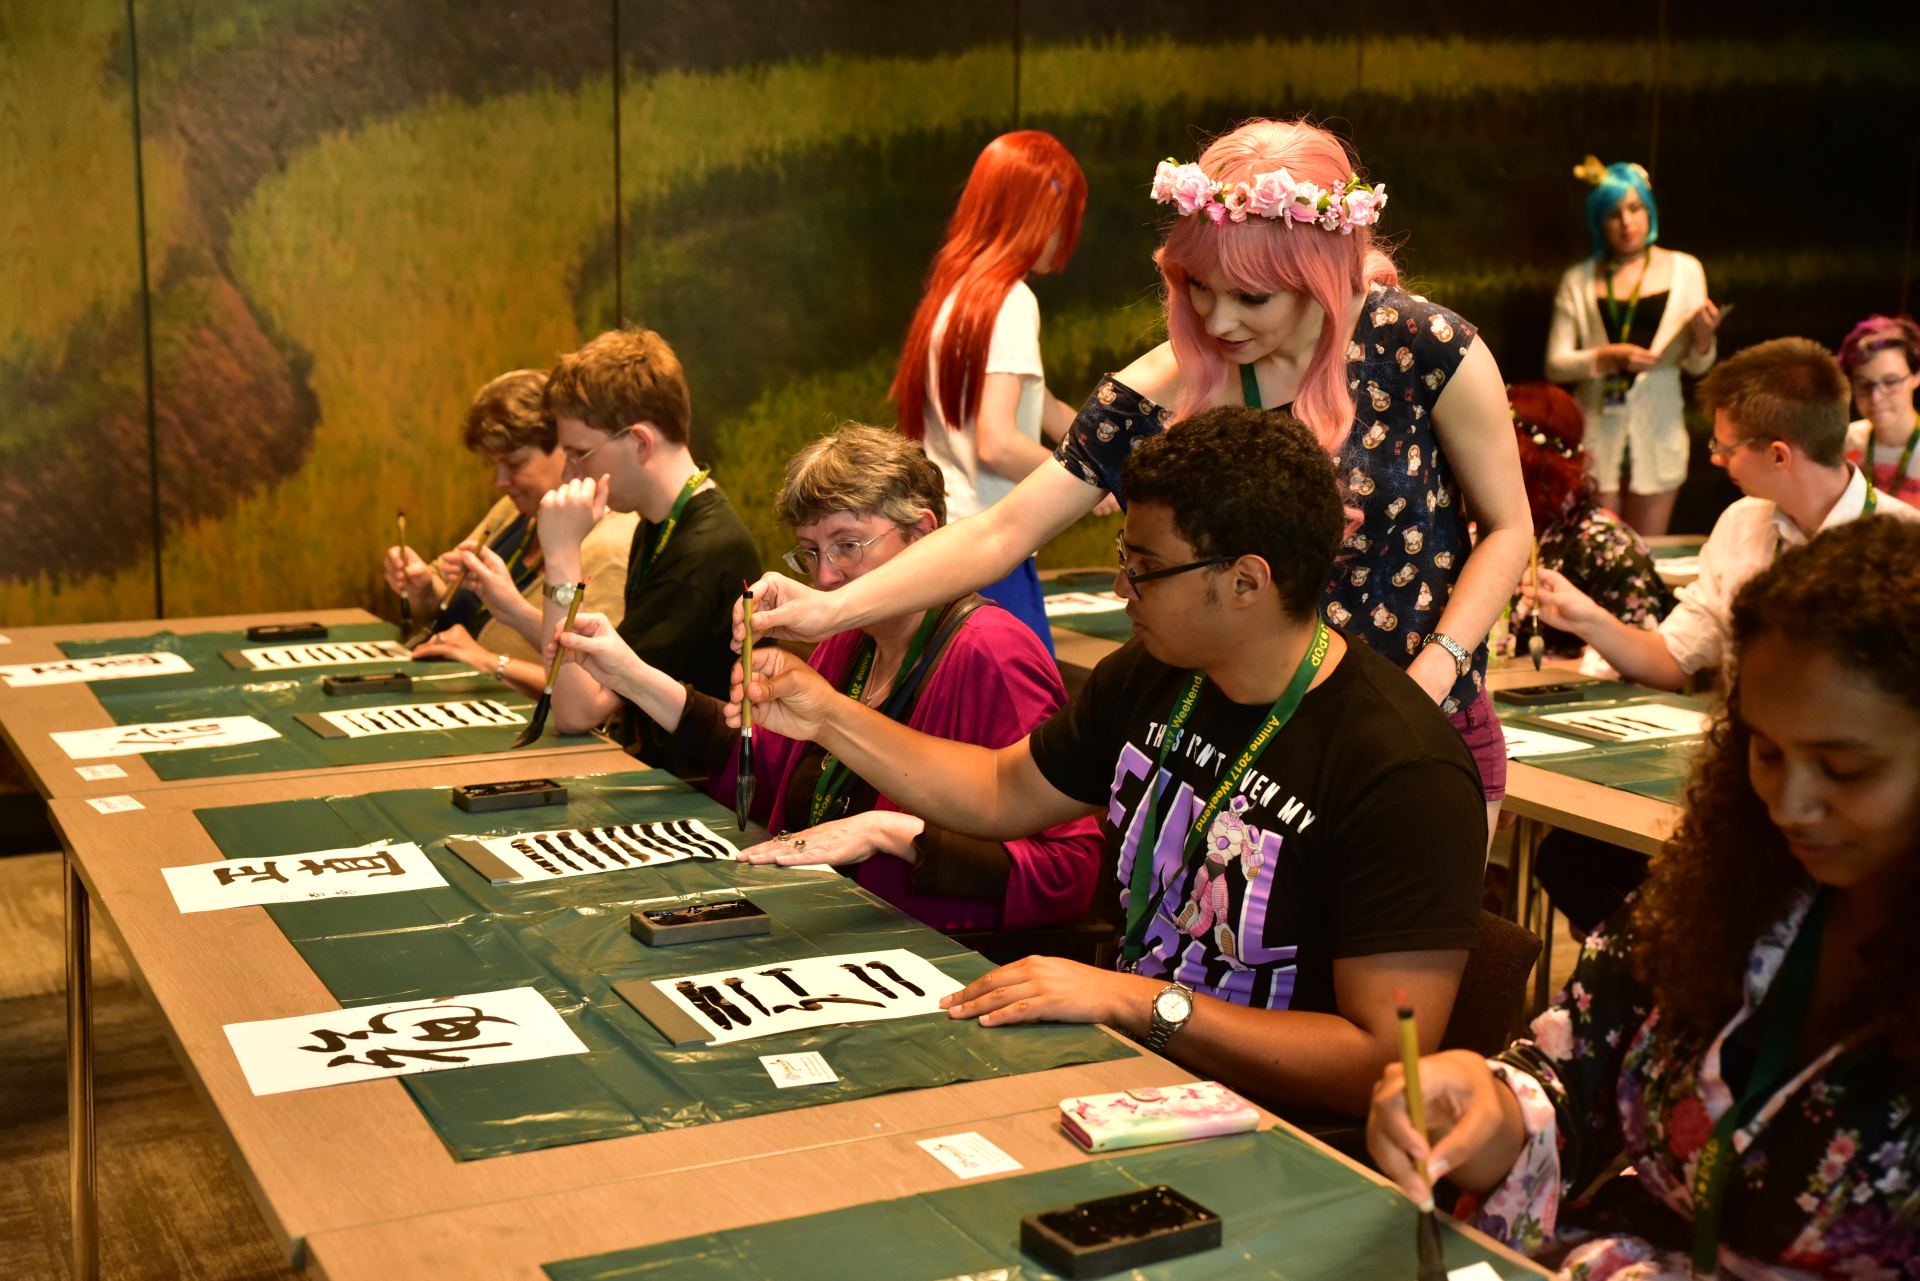 Calligraphy workshop at AnimeCon